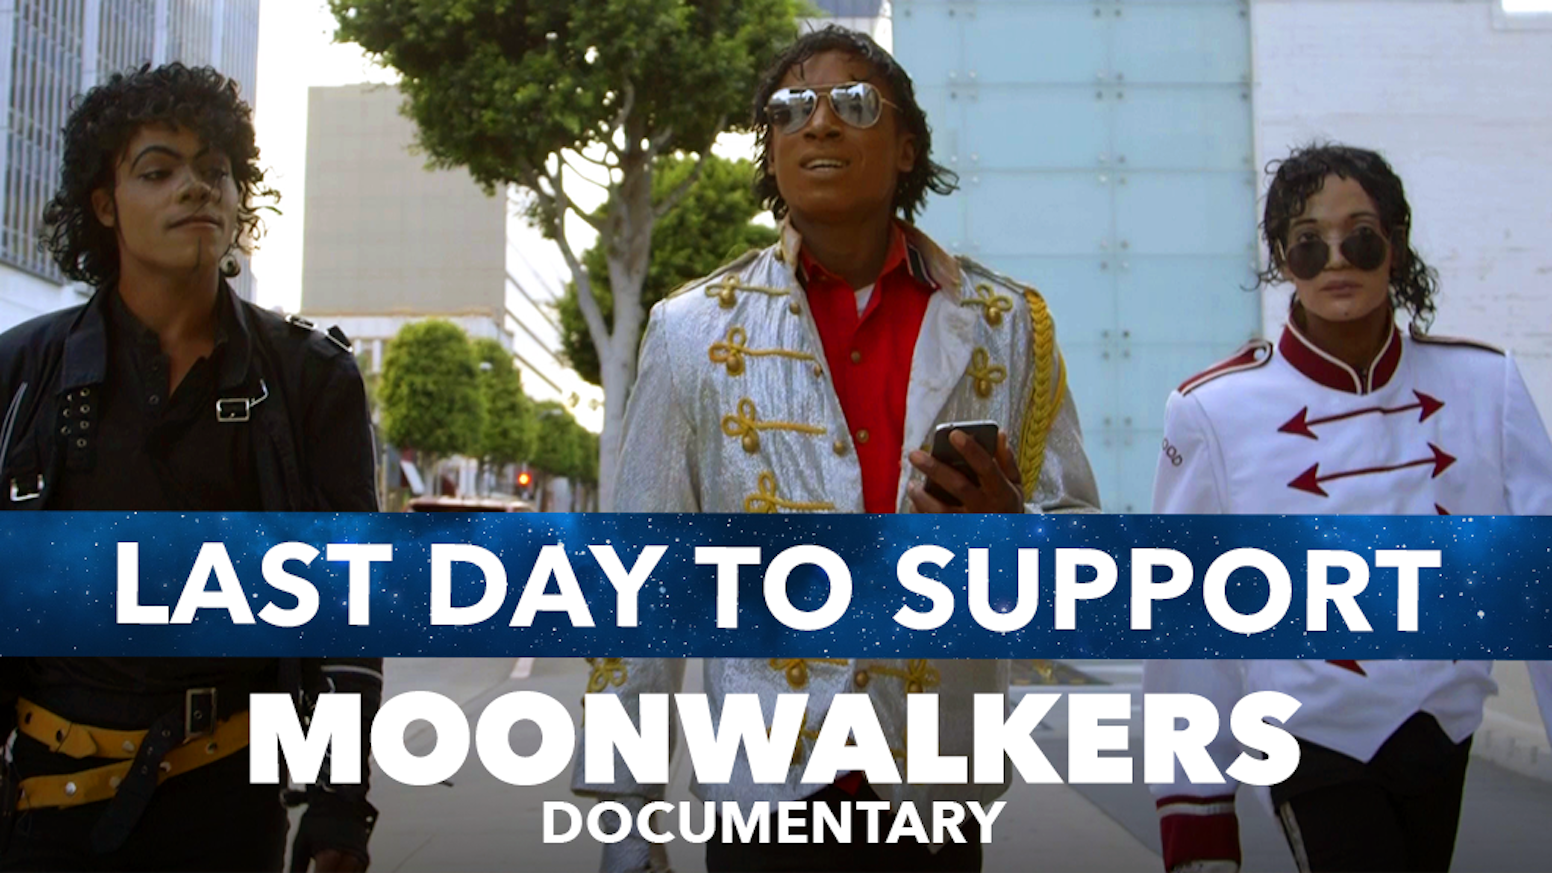 A film following the lives of three Michael Jackson tribute artists as they search for fame and fortune in Hollywood